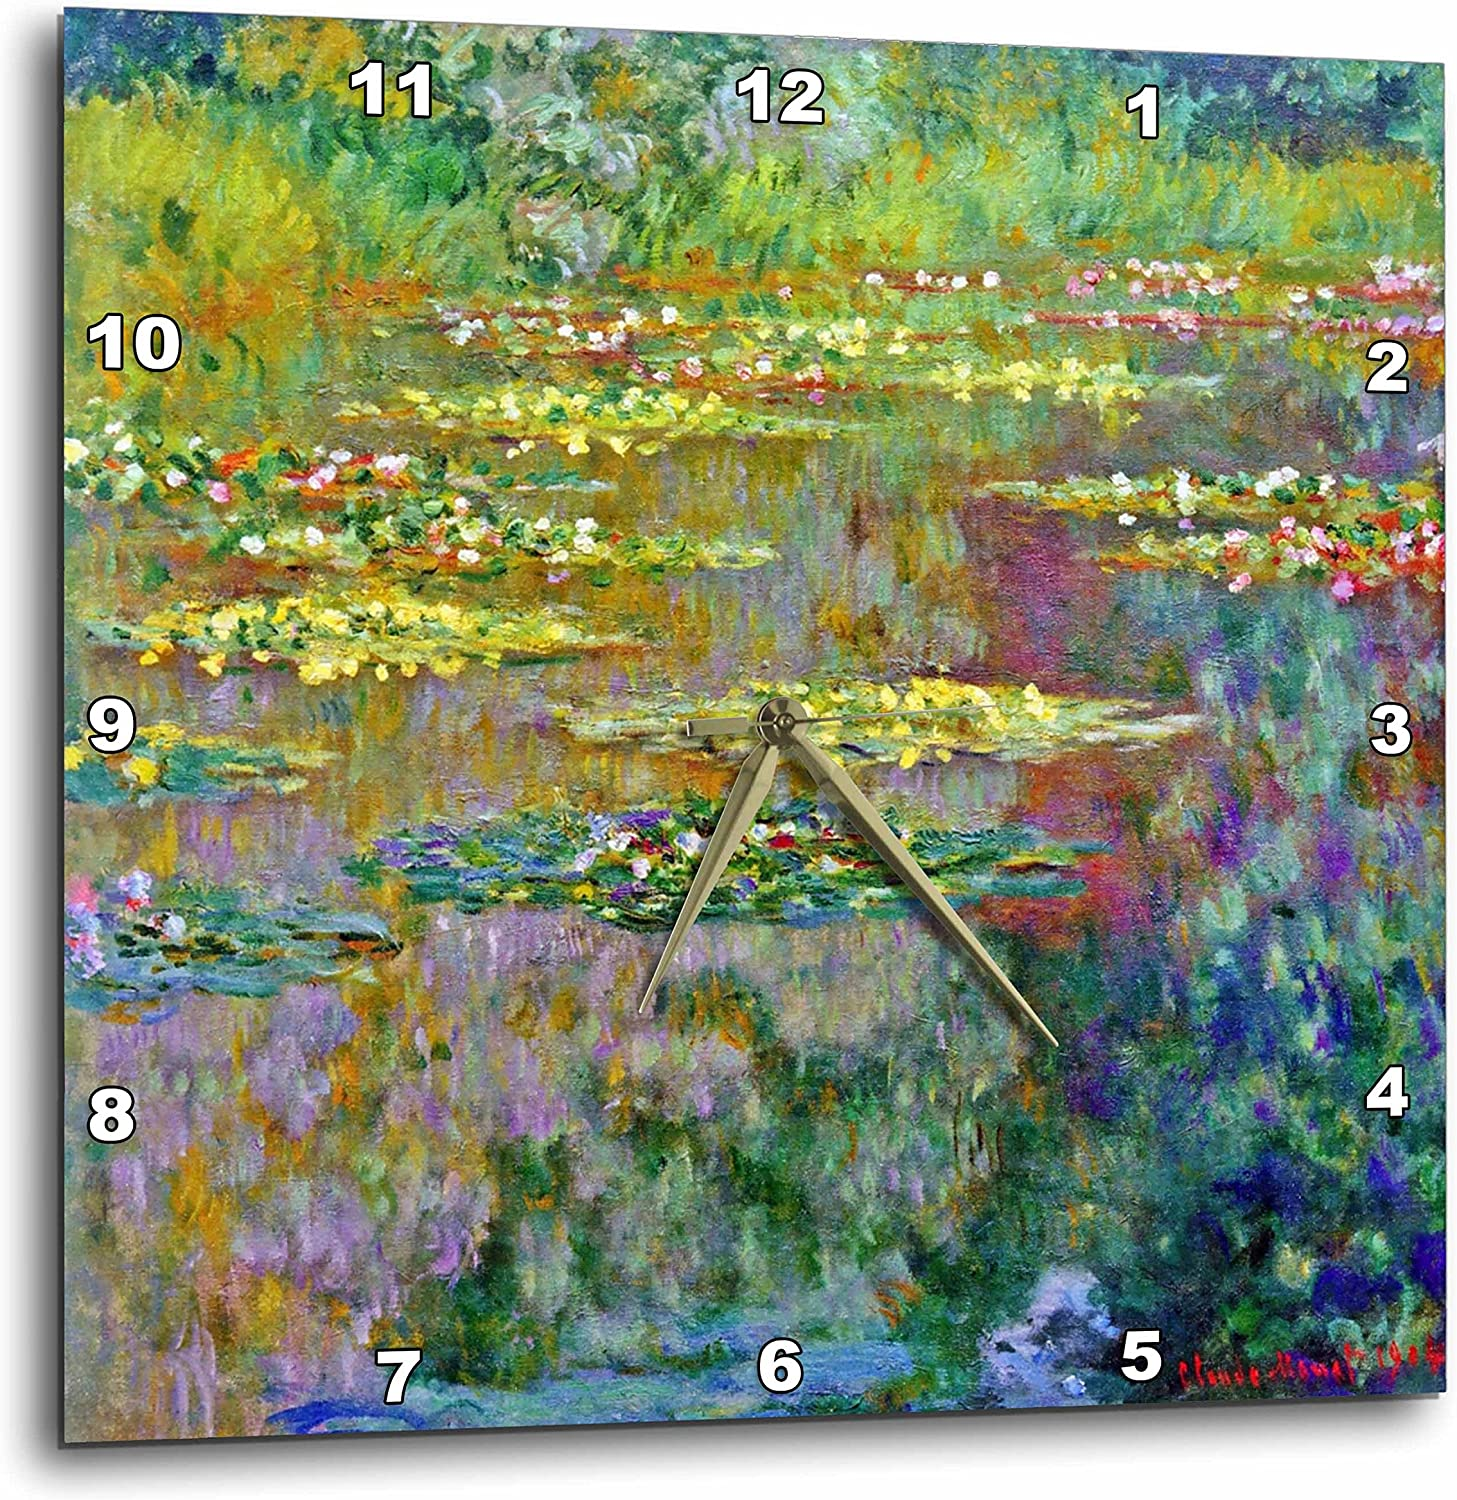 3dRose dpp_155656_3 Water Lilies by Impressionist Artist Claude Monet-Water Lilies on Lake Famous Nature Impressionism-Wall Clock, 15 by 15-Inch